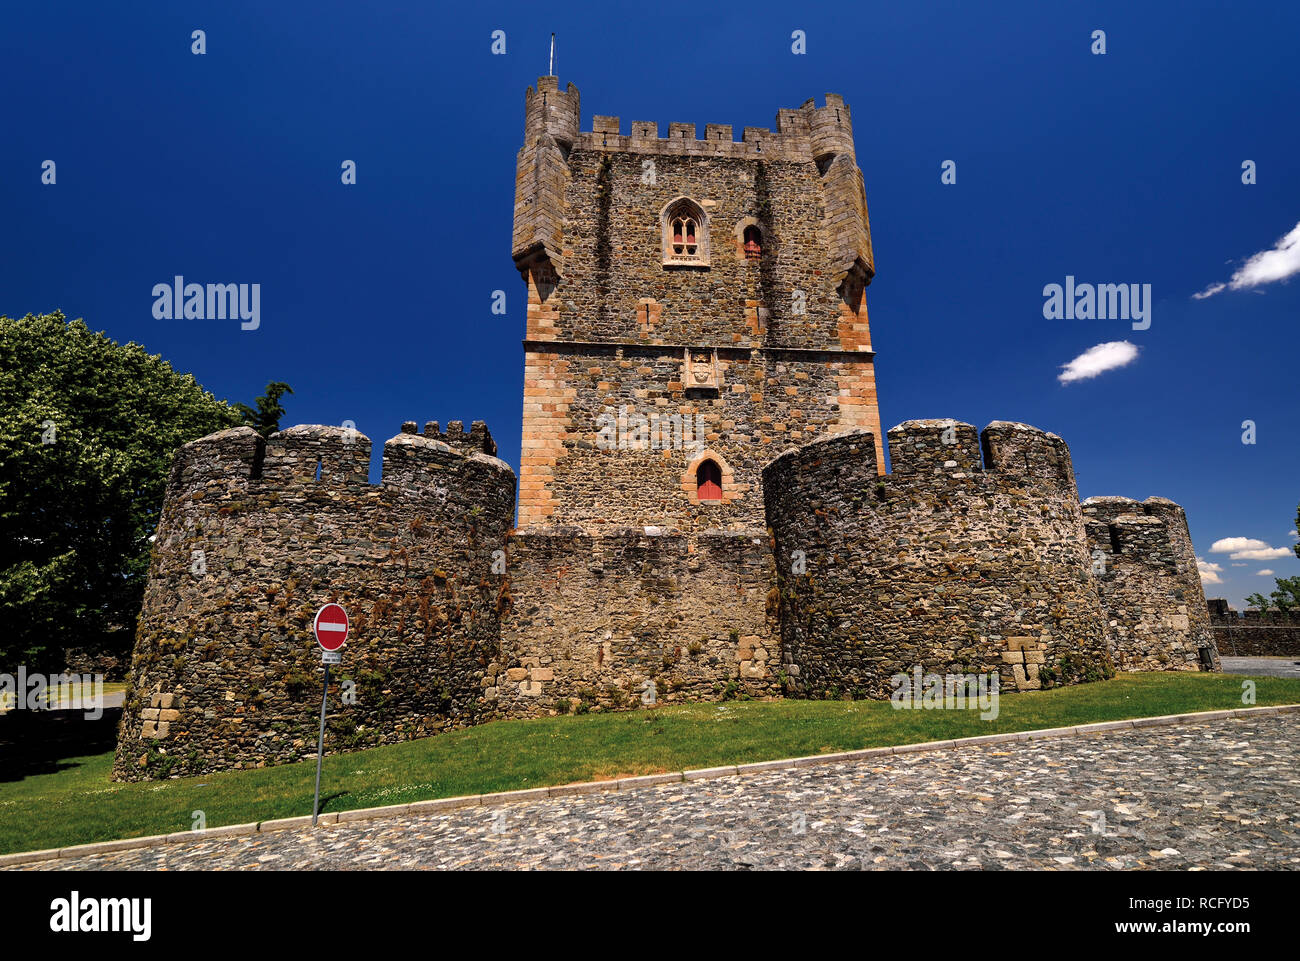 Medieval castle with square and cylindric towers - Stock Image